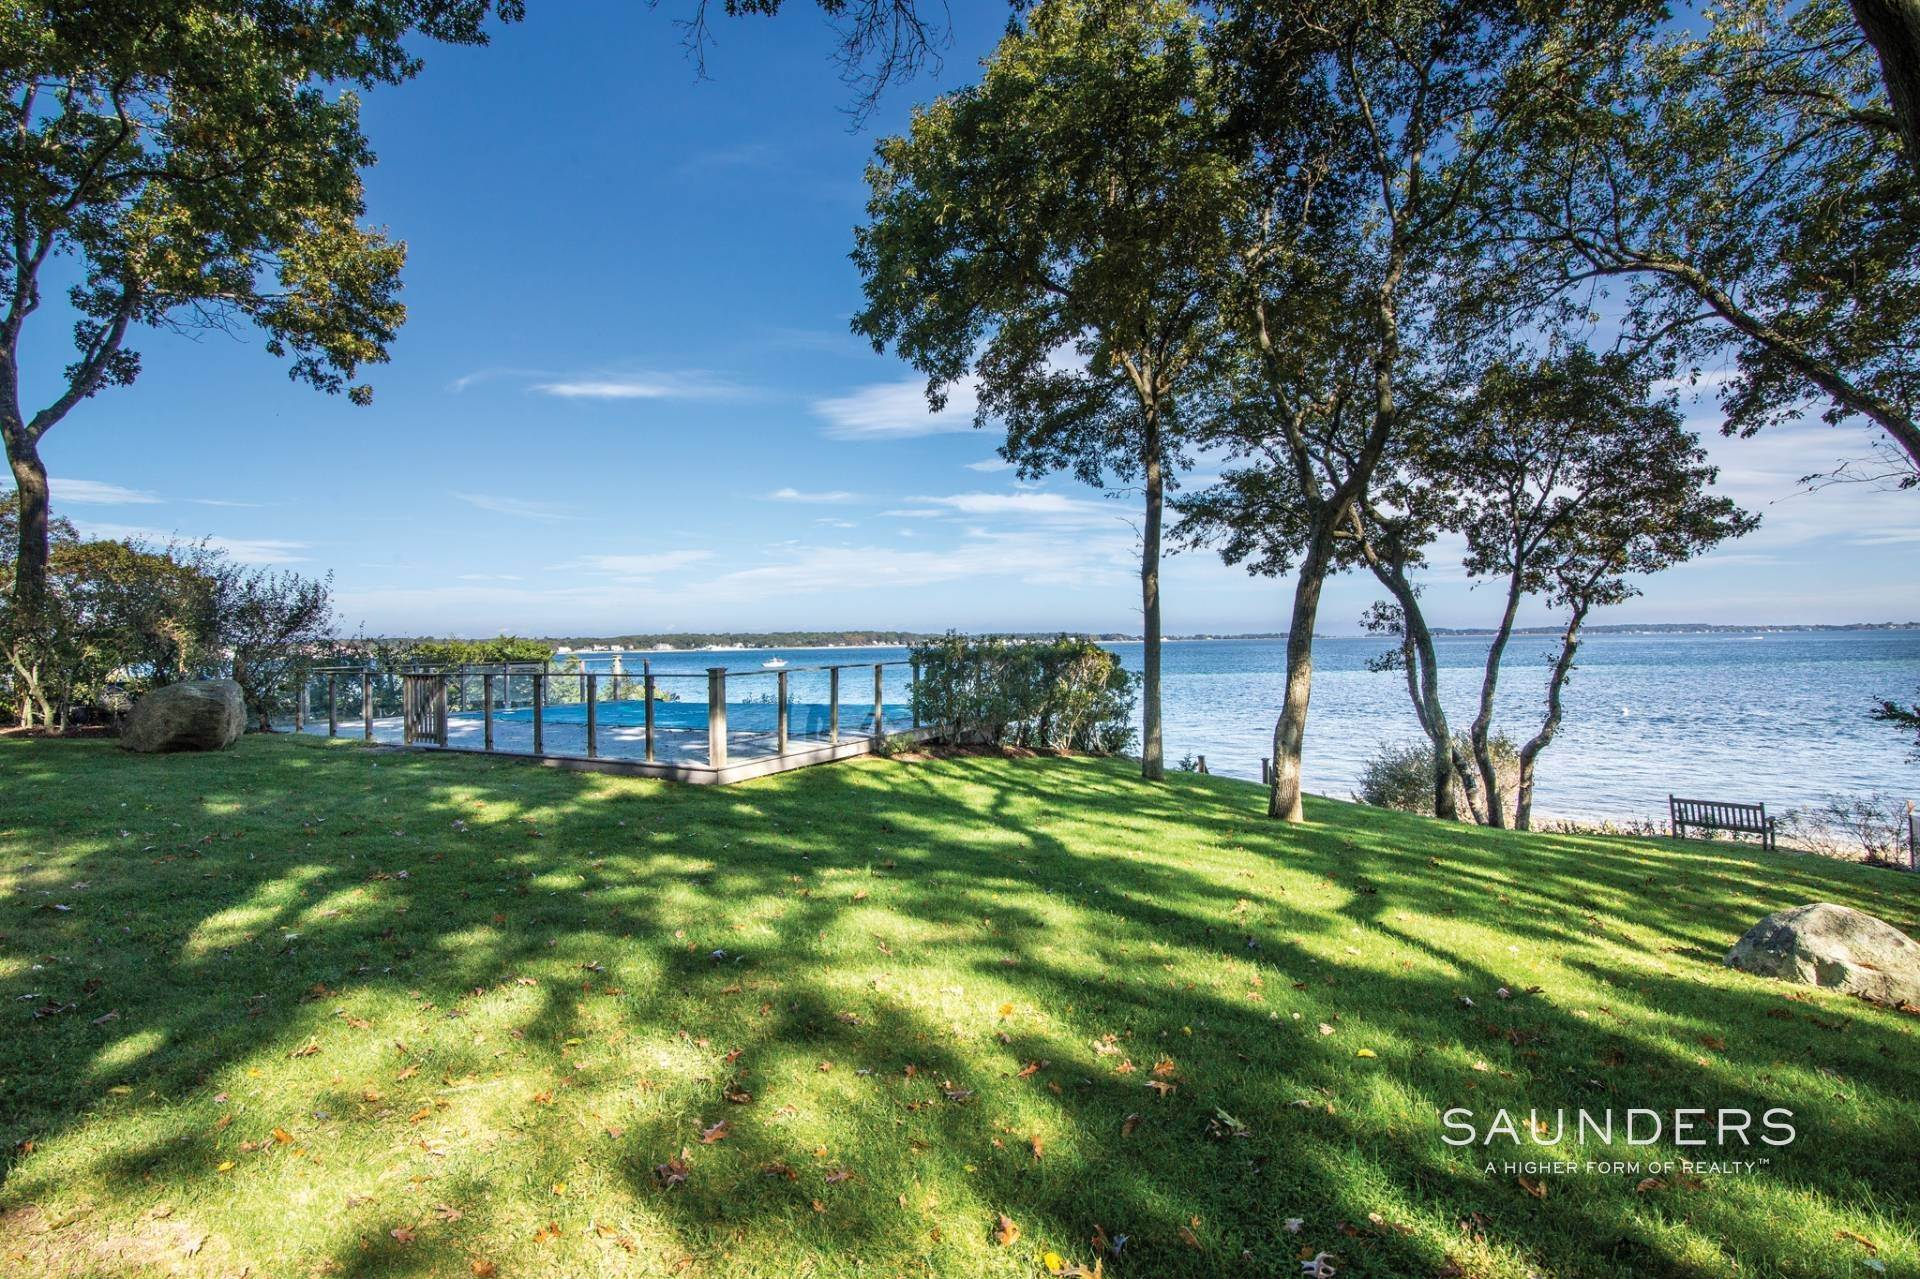 4. Single Family Homes for Sale at Shelter Island Bayfront With Infinity Edge Pool And Sandy Beach 17 Point Lane, Shelter Island Heights, Shelter Island, NY 11964